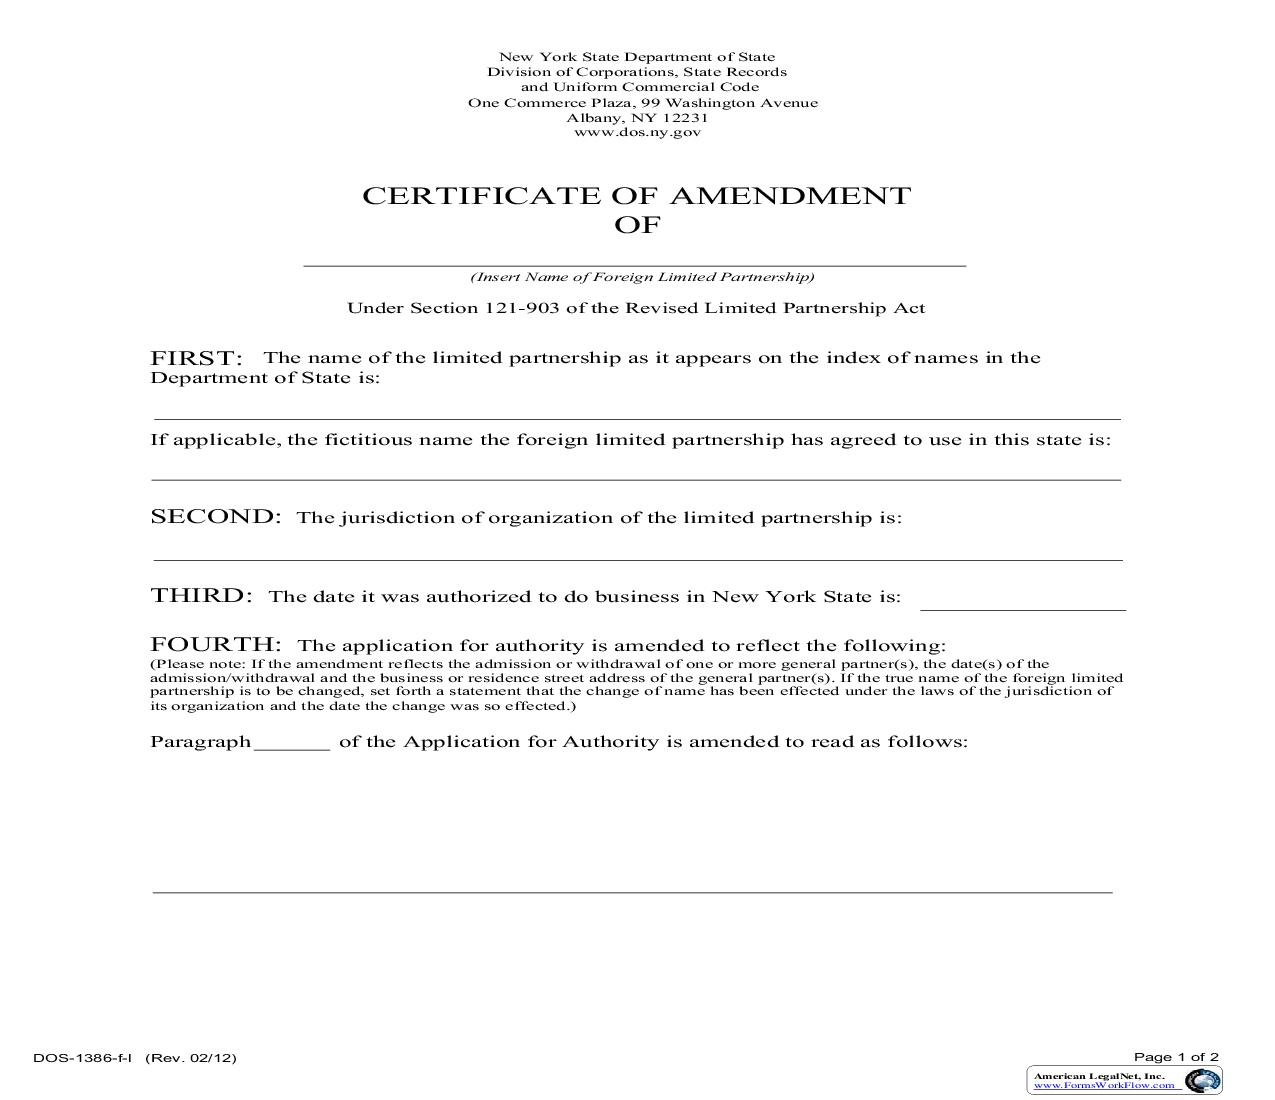 Certificate Of Amendment (Foreign Limited Partnership) {DOS-1386-f-l} | Pdf Fpdf Doc Docx | New York